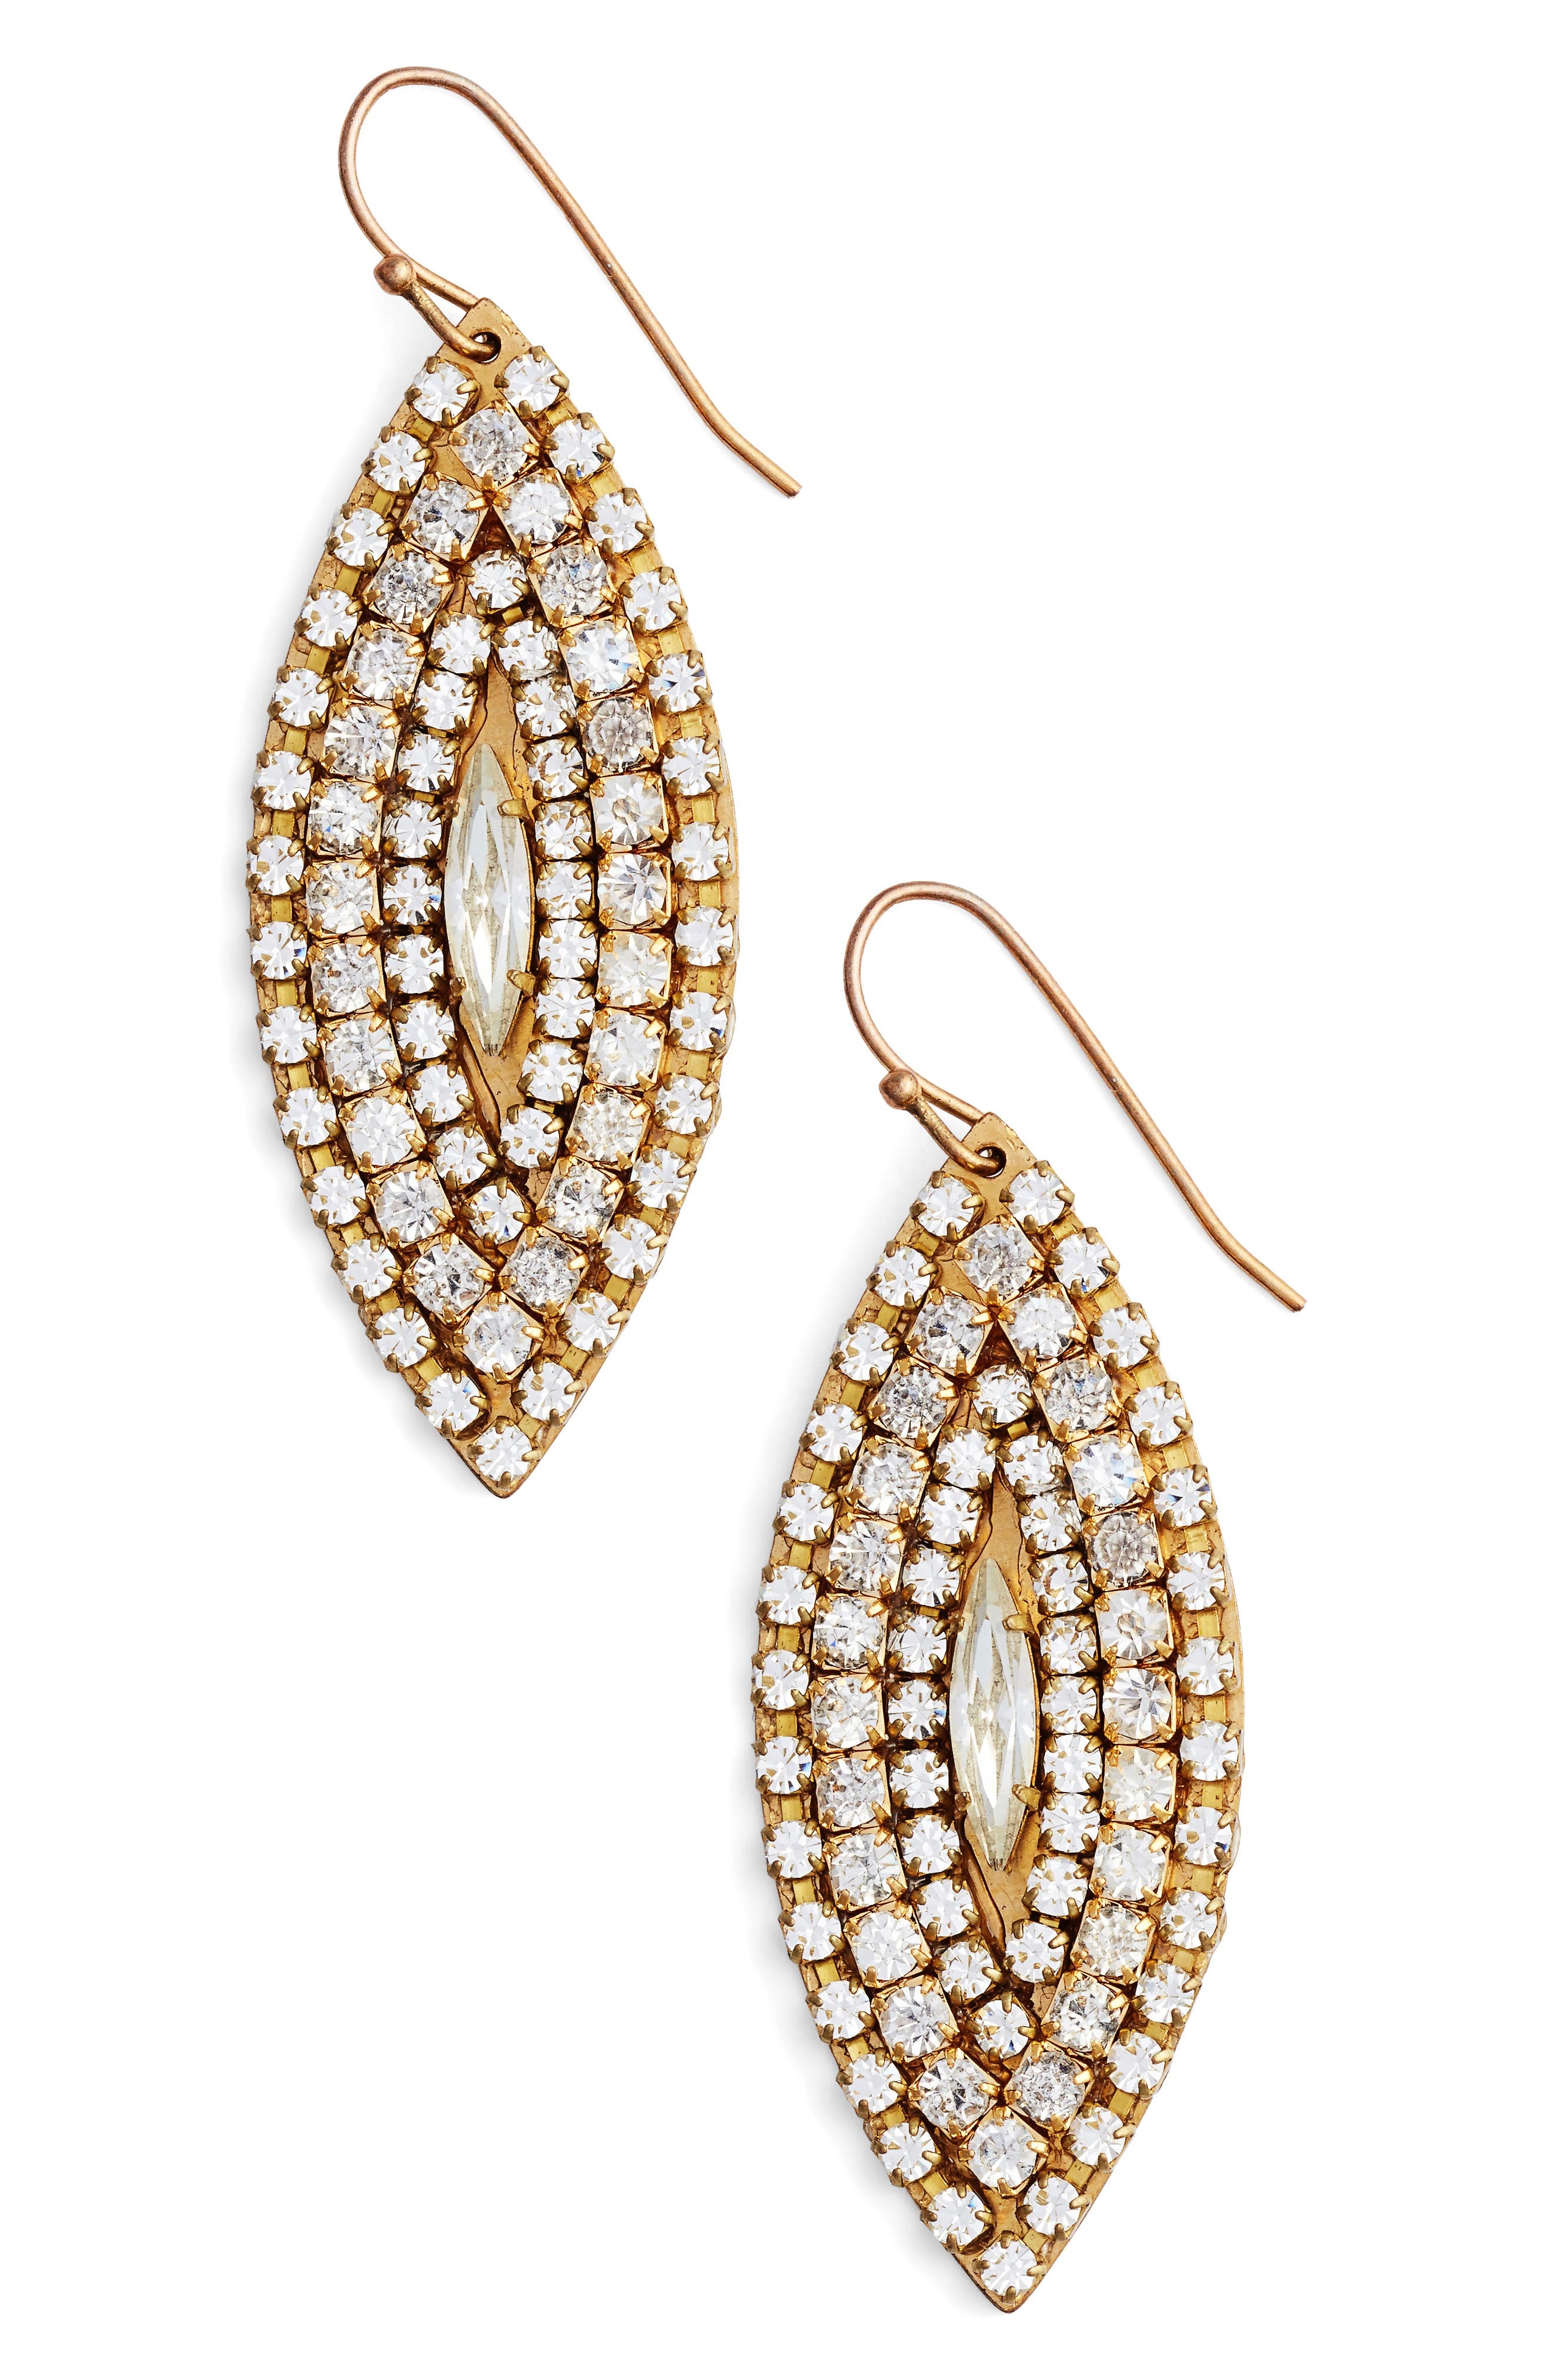 Alternate Image 1 Selected - Sandy Hyun Marquise Statement Earrings